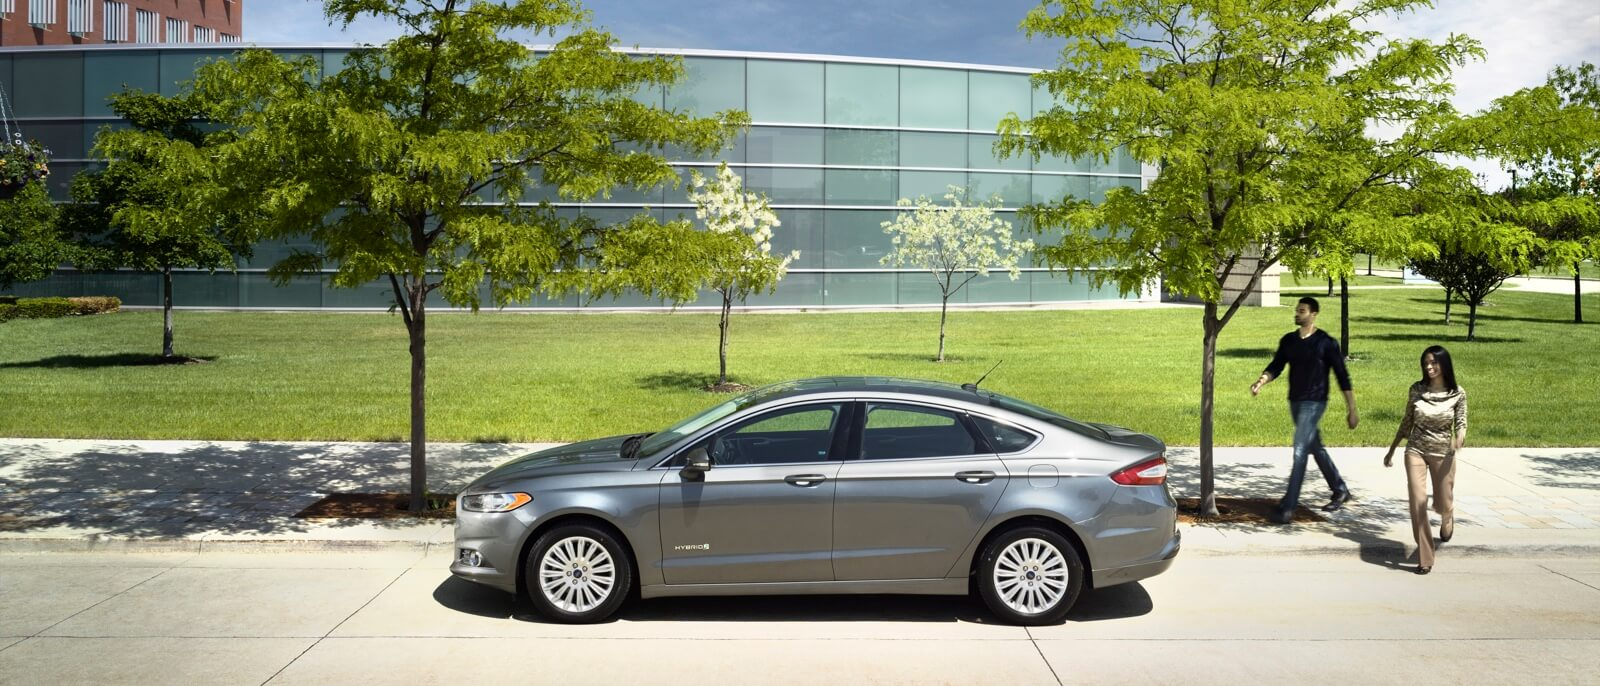 2016 Ford Fusion Hybrid light gray exterior on display